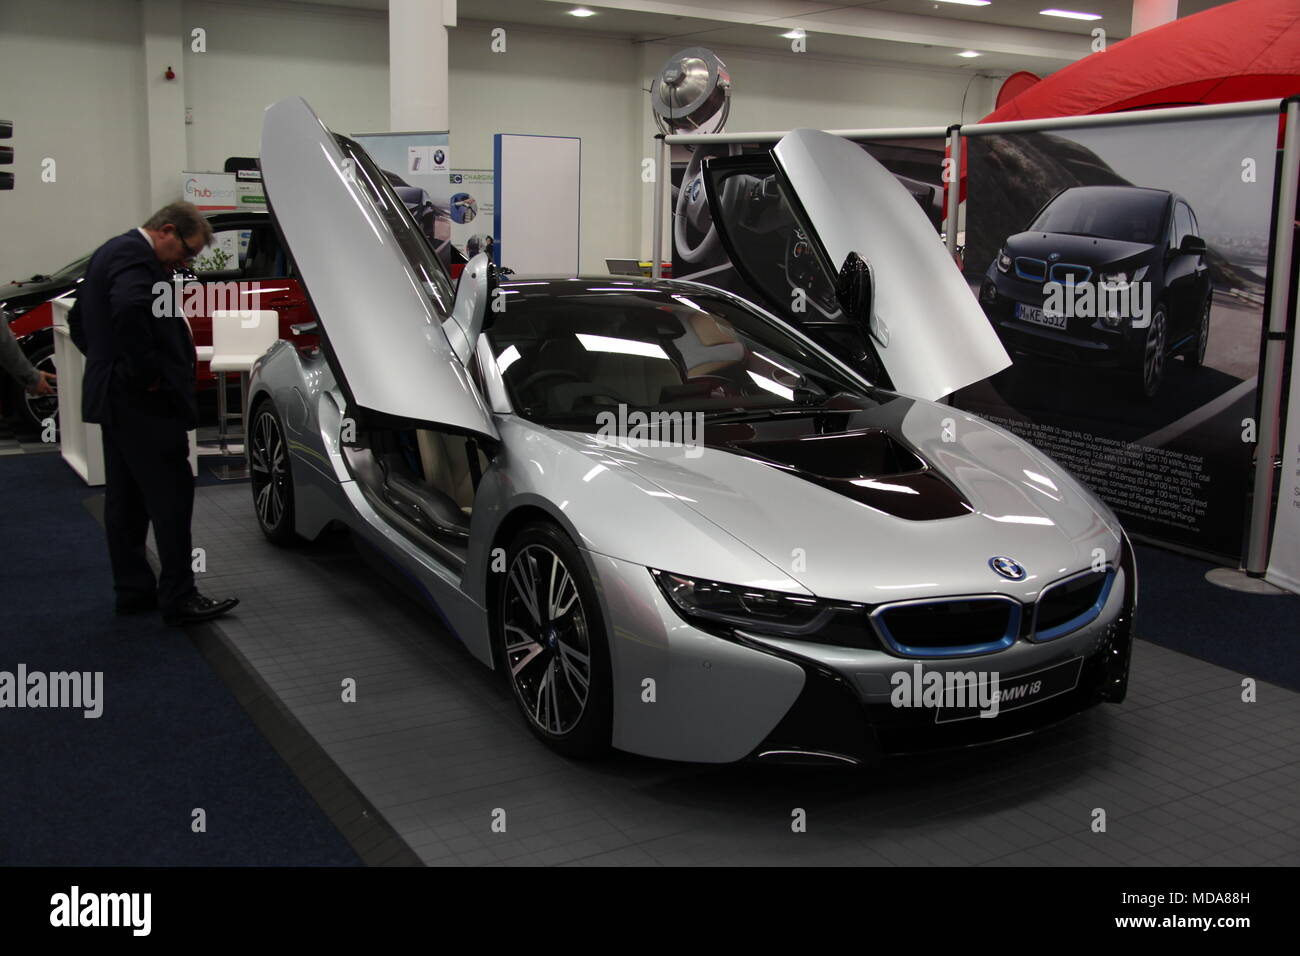 Dublin Ireland 18th Apr 2018 A Visitor Looks At A Bmw I8